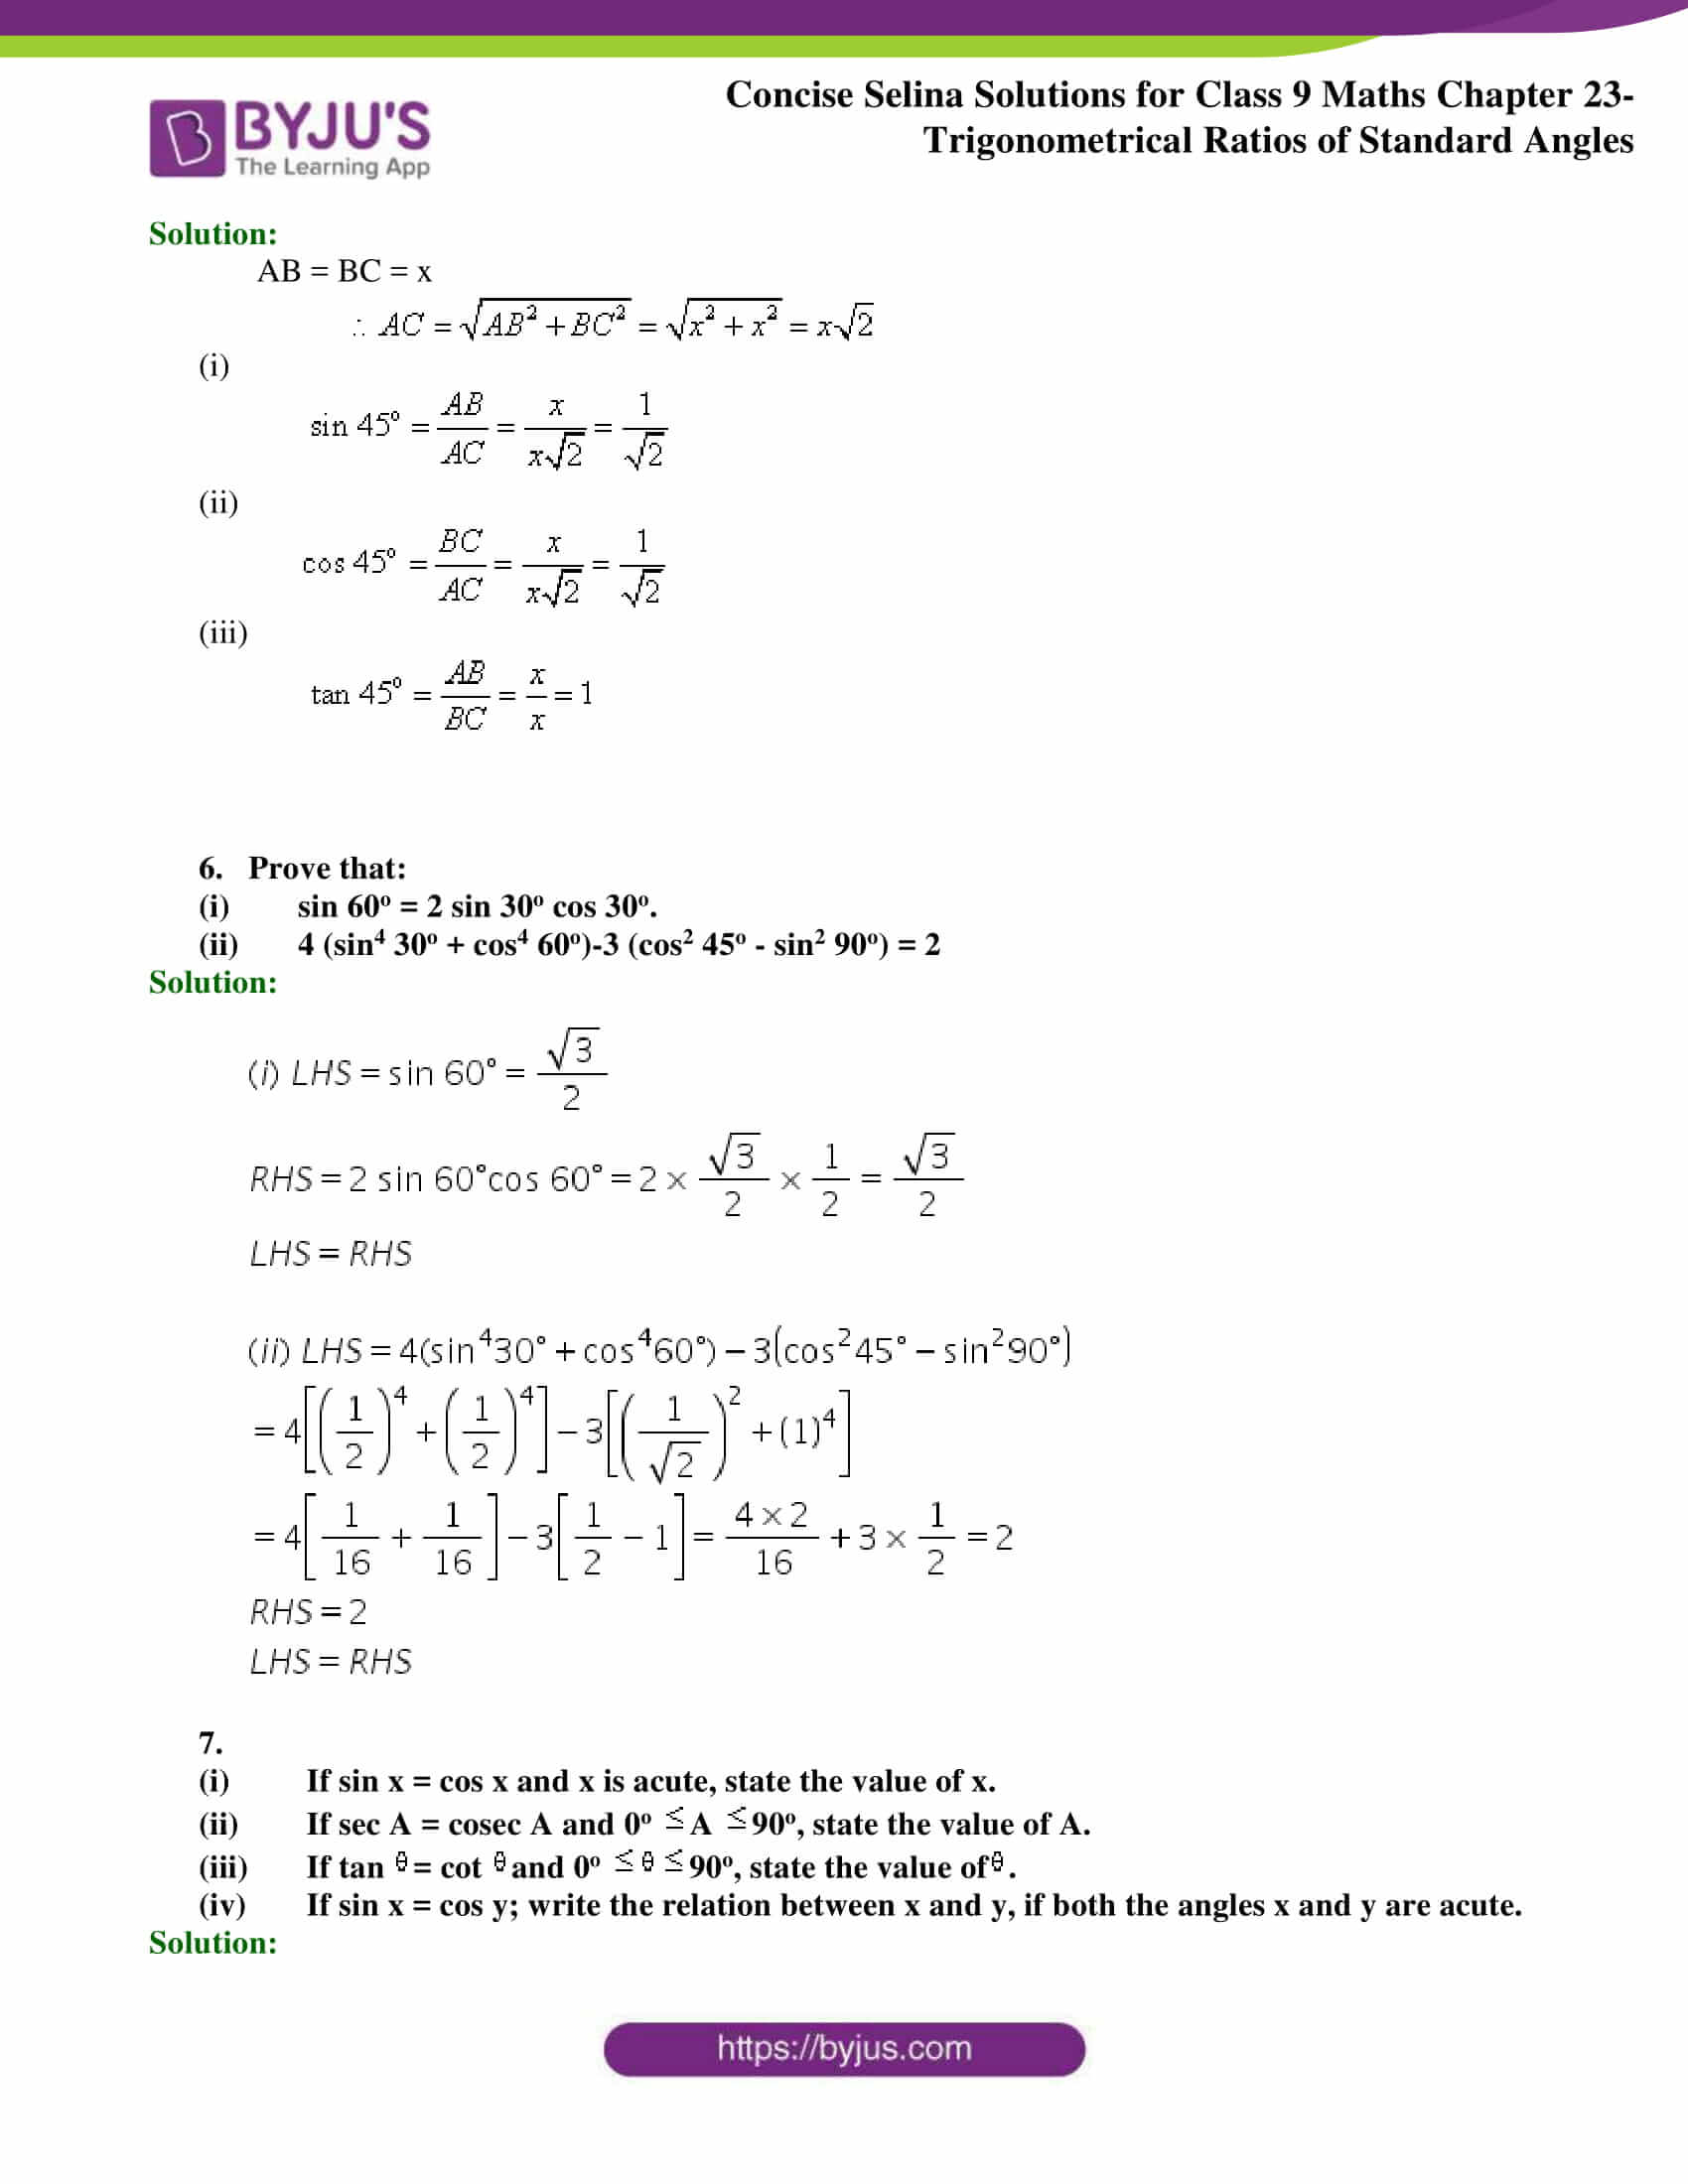 Concise Selina Solutions Class 9 Maths Chapter 23 part 05